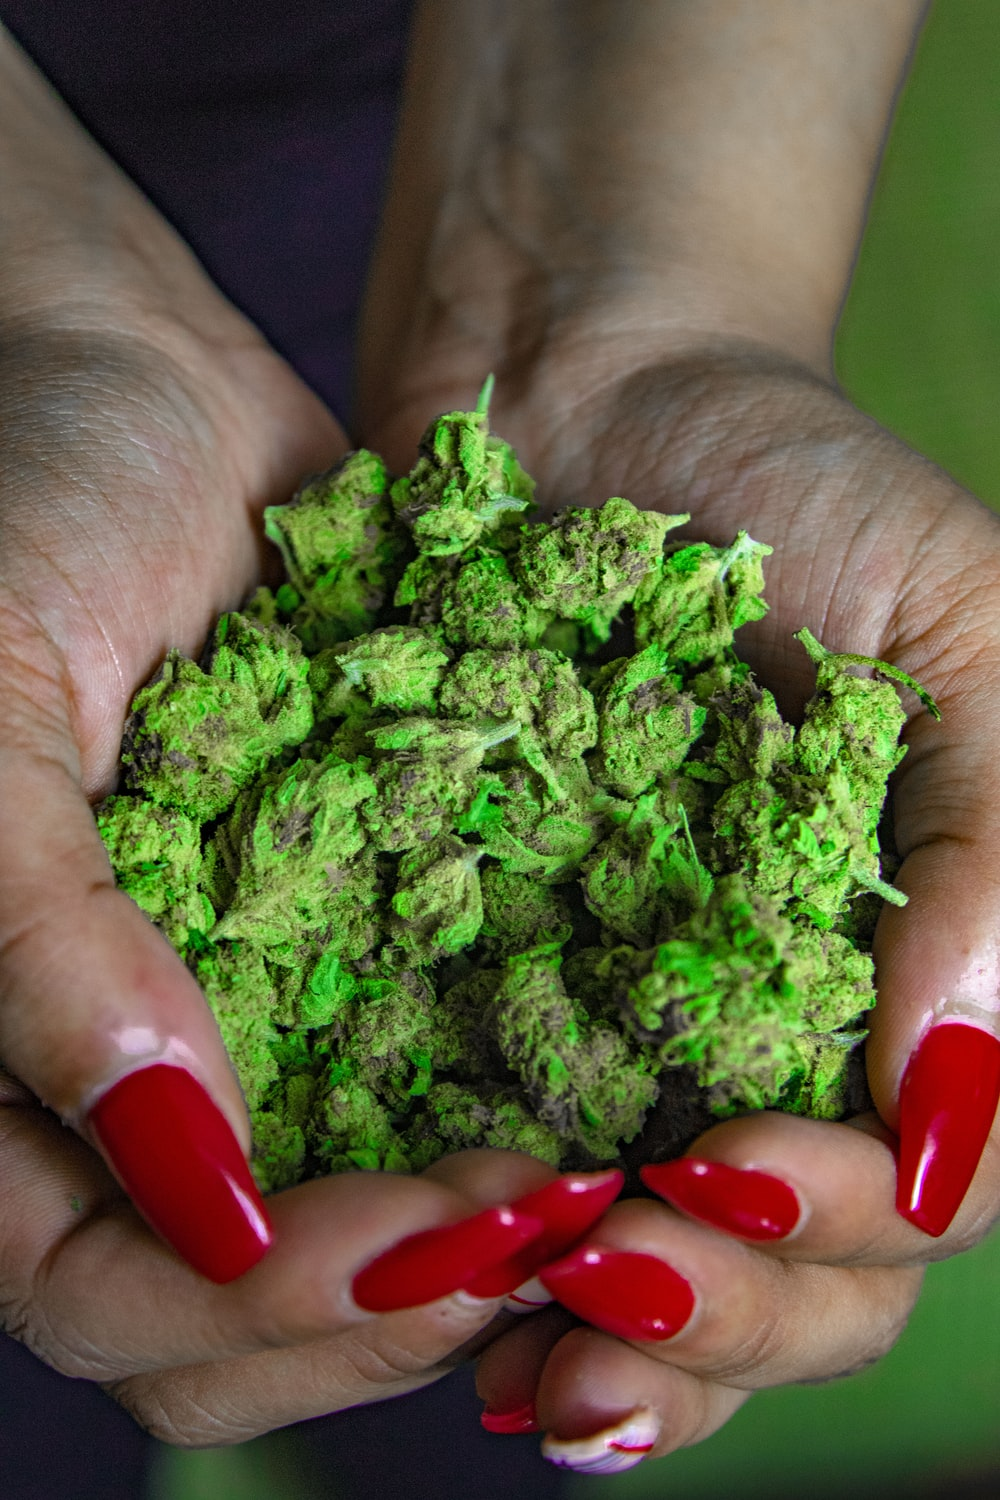 green kush on human hands